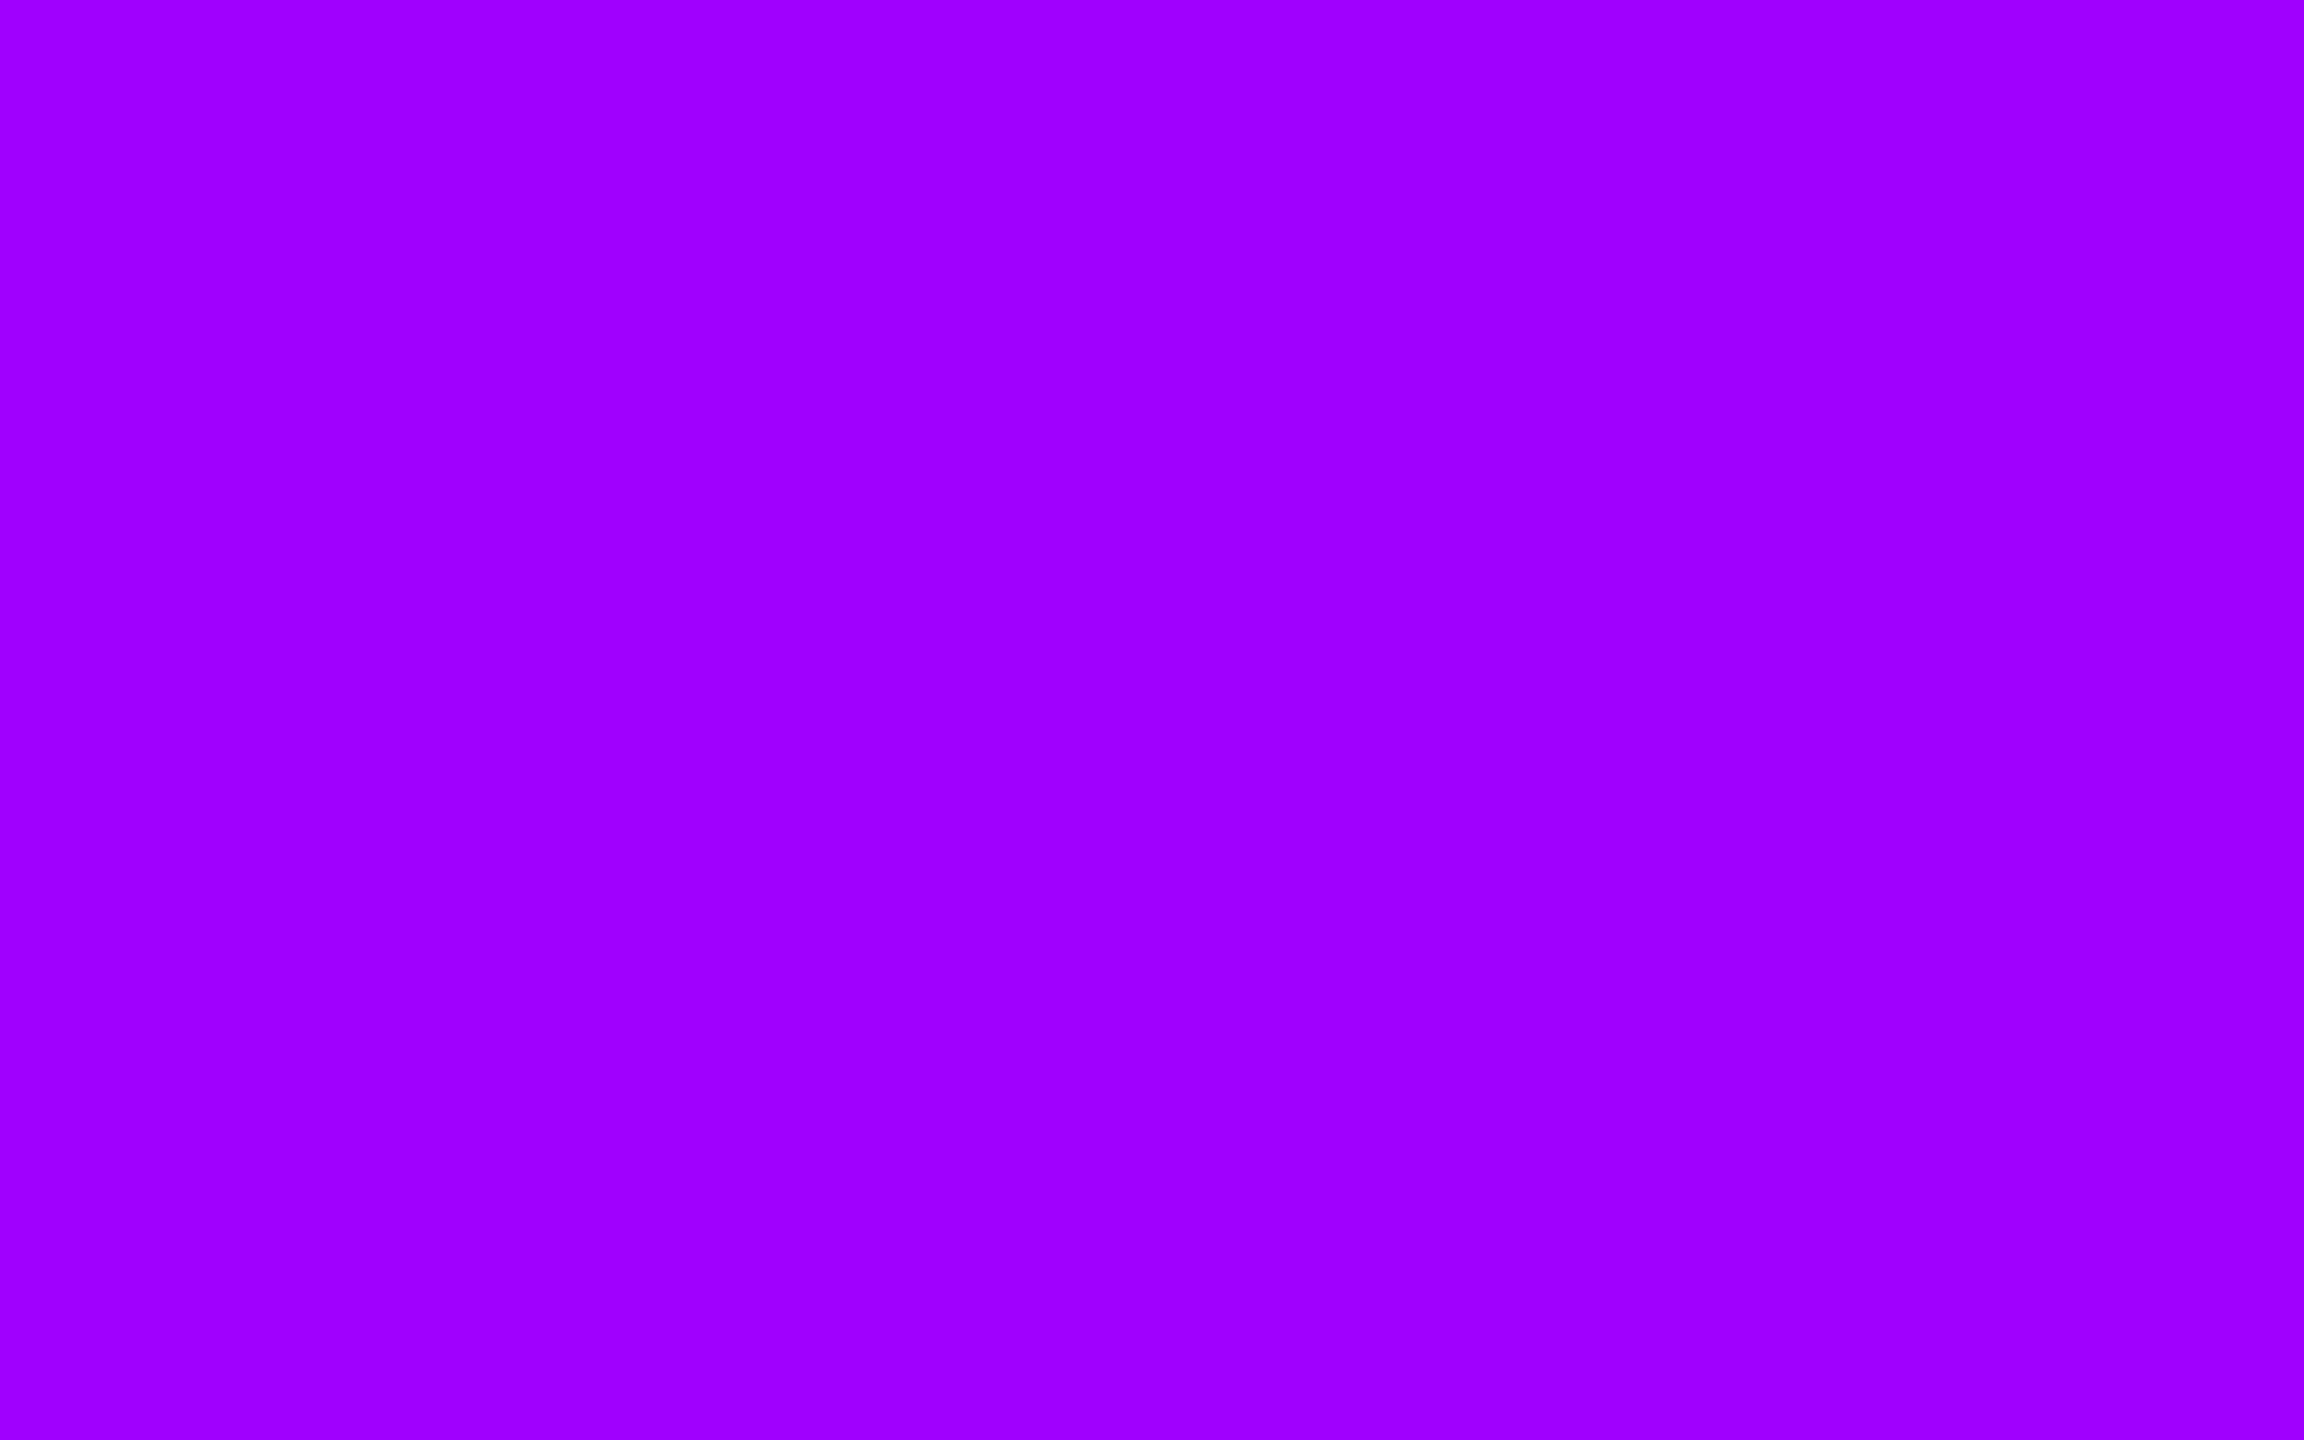 2304x1440 Vivid Violet Solid Color Background